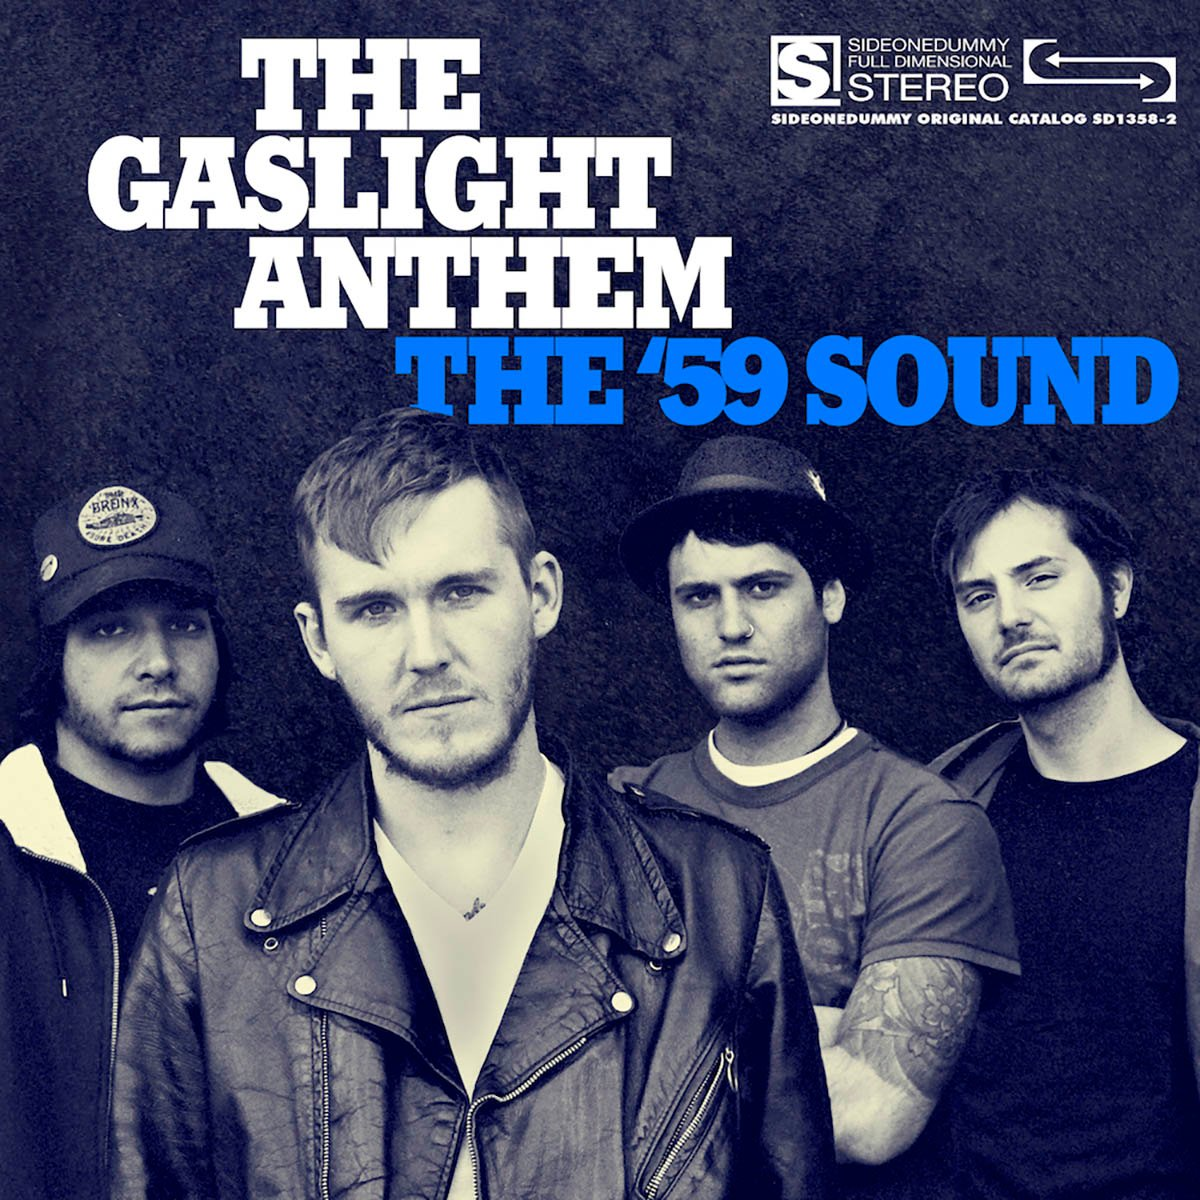 The Gaslight Anthem, The '59 Sound